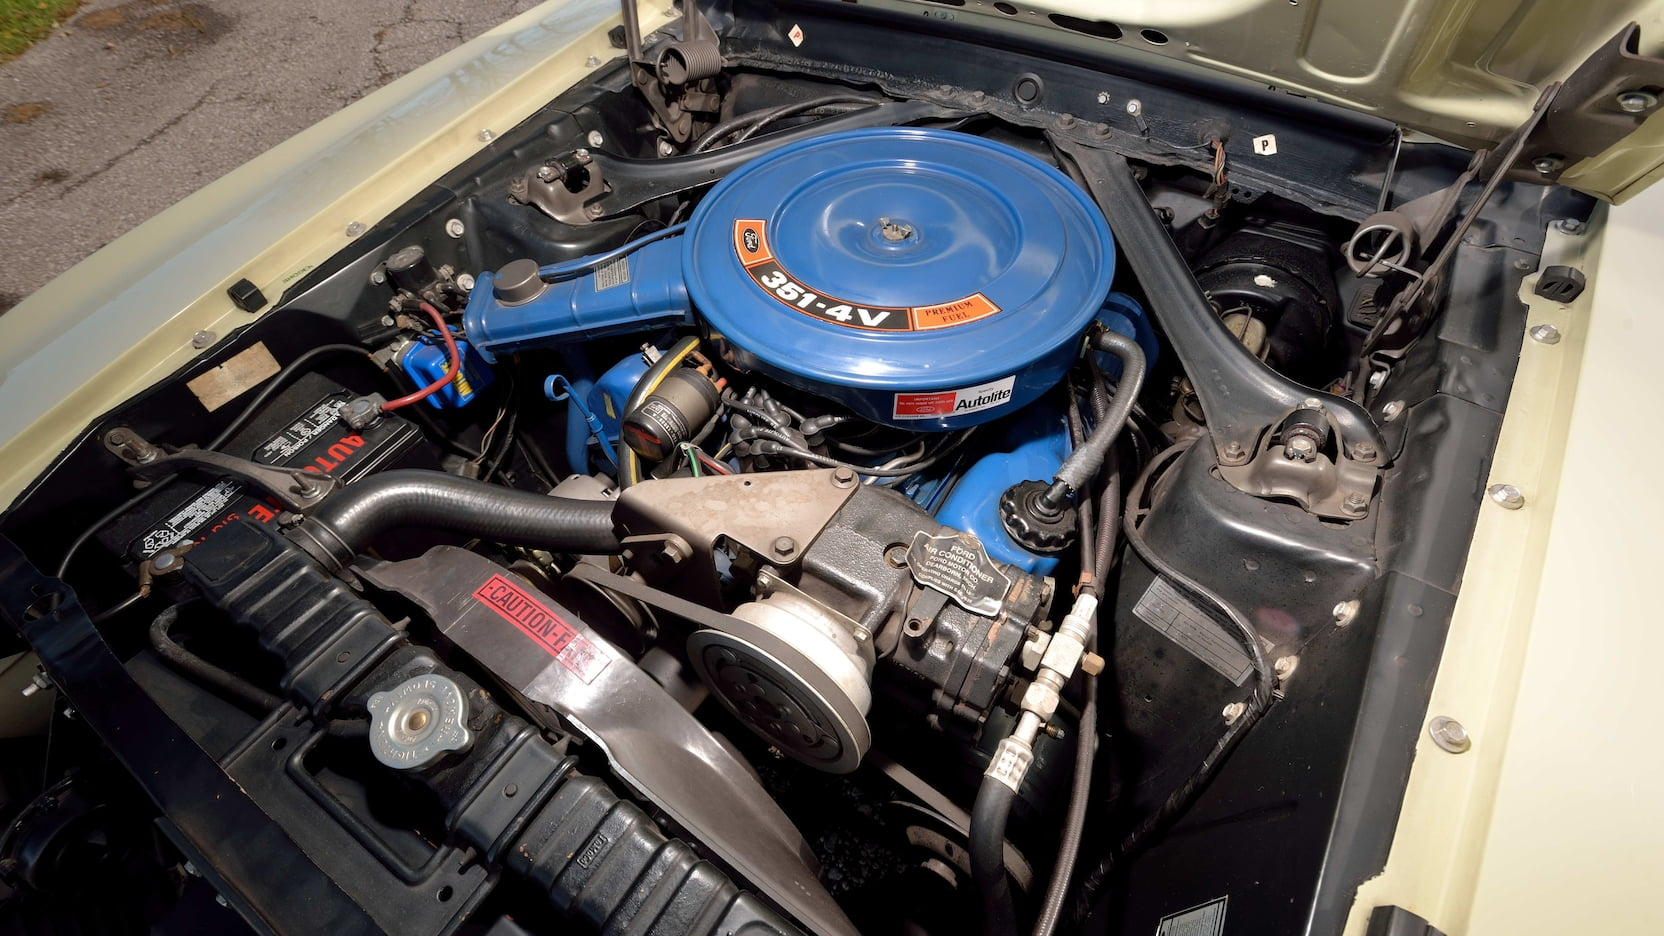 1970 Ford Mustang 351 Cleveland engine